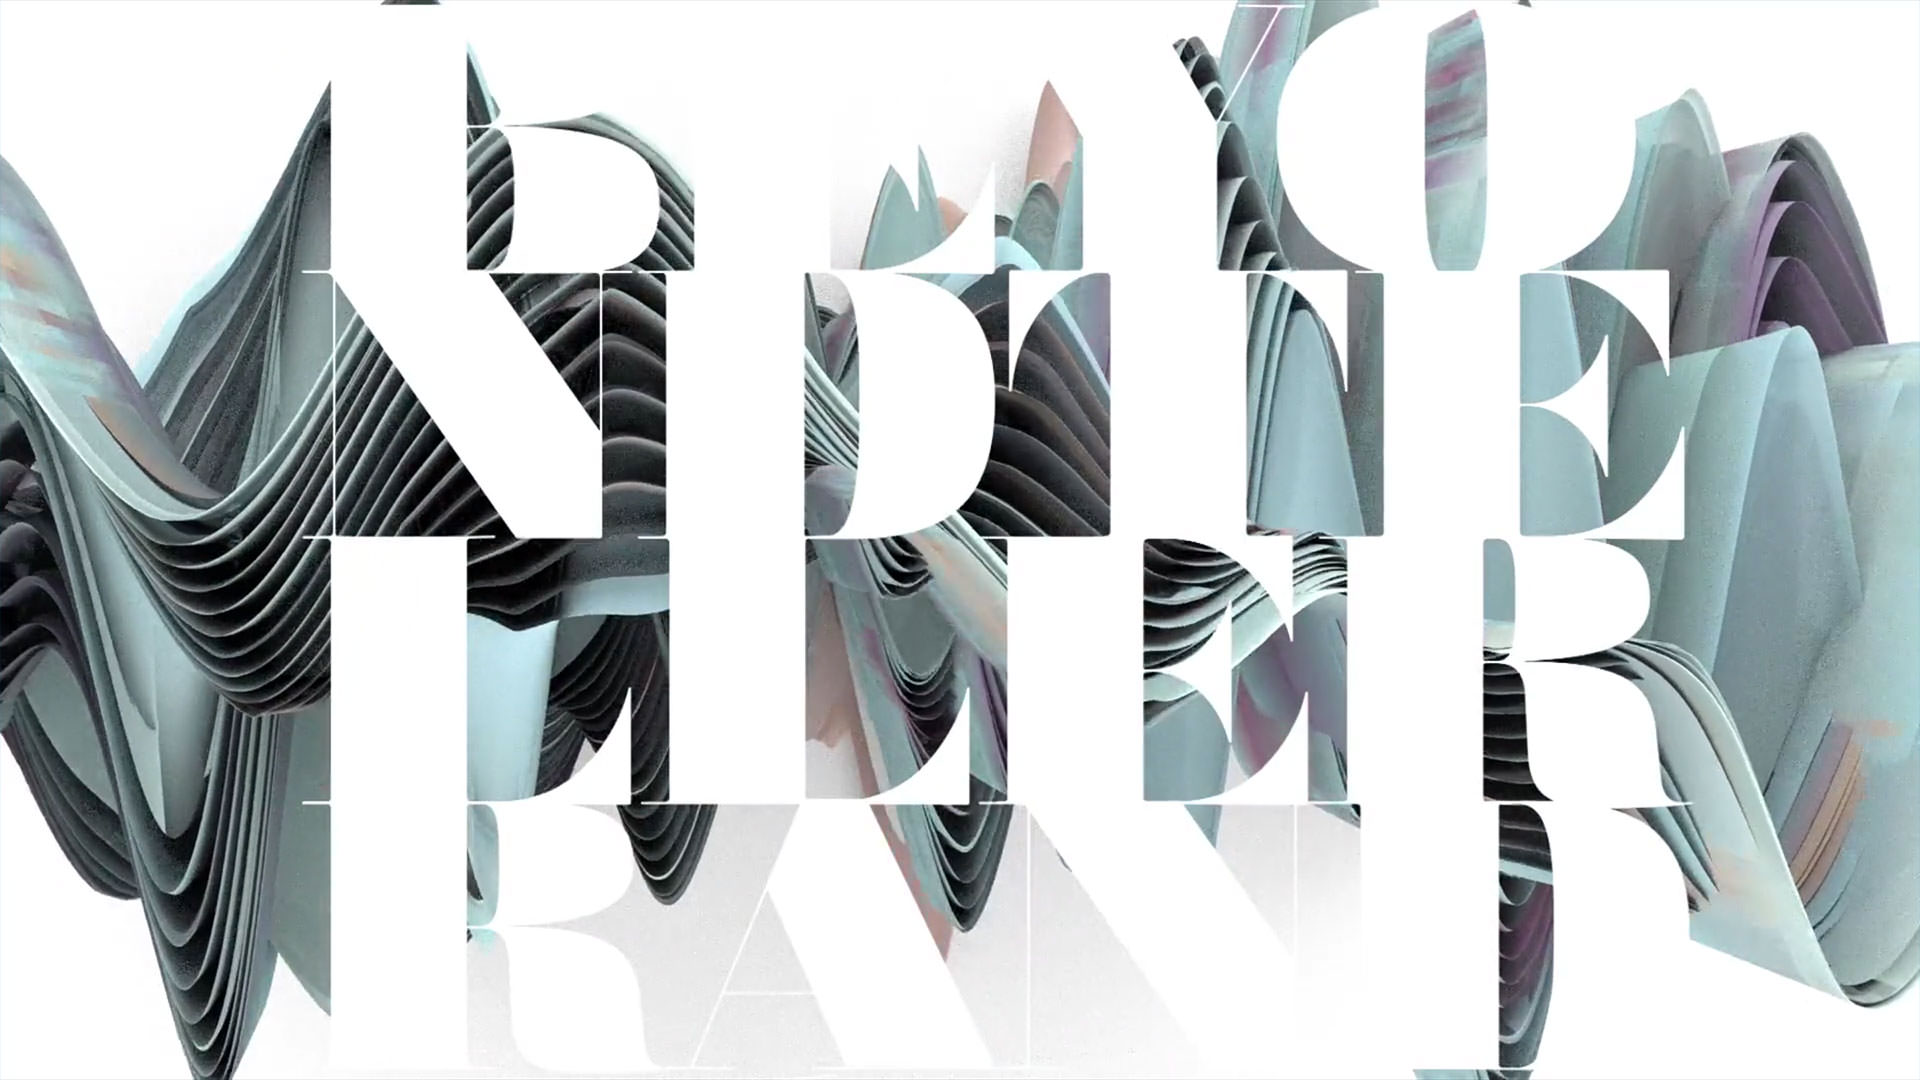 Screenshot of this year's opening titles showing a wave and the name of the event in big letters